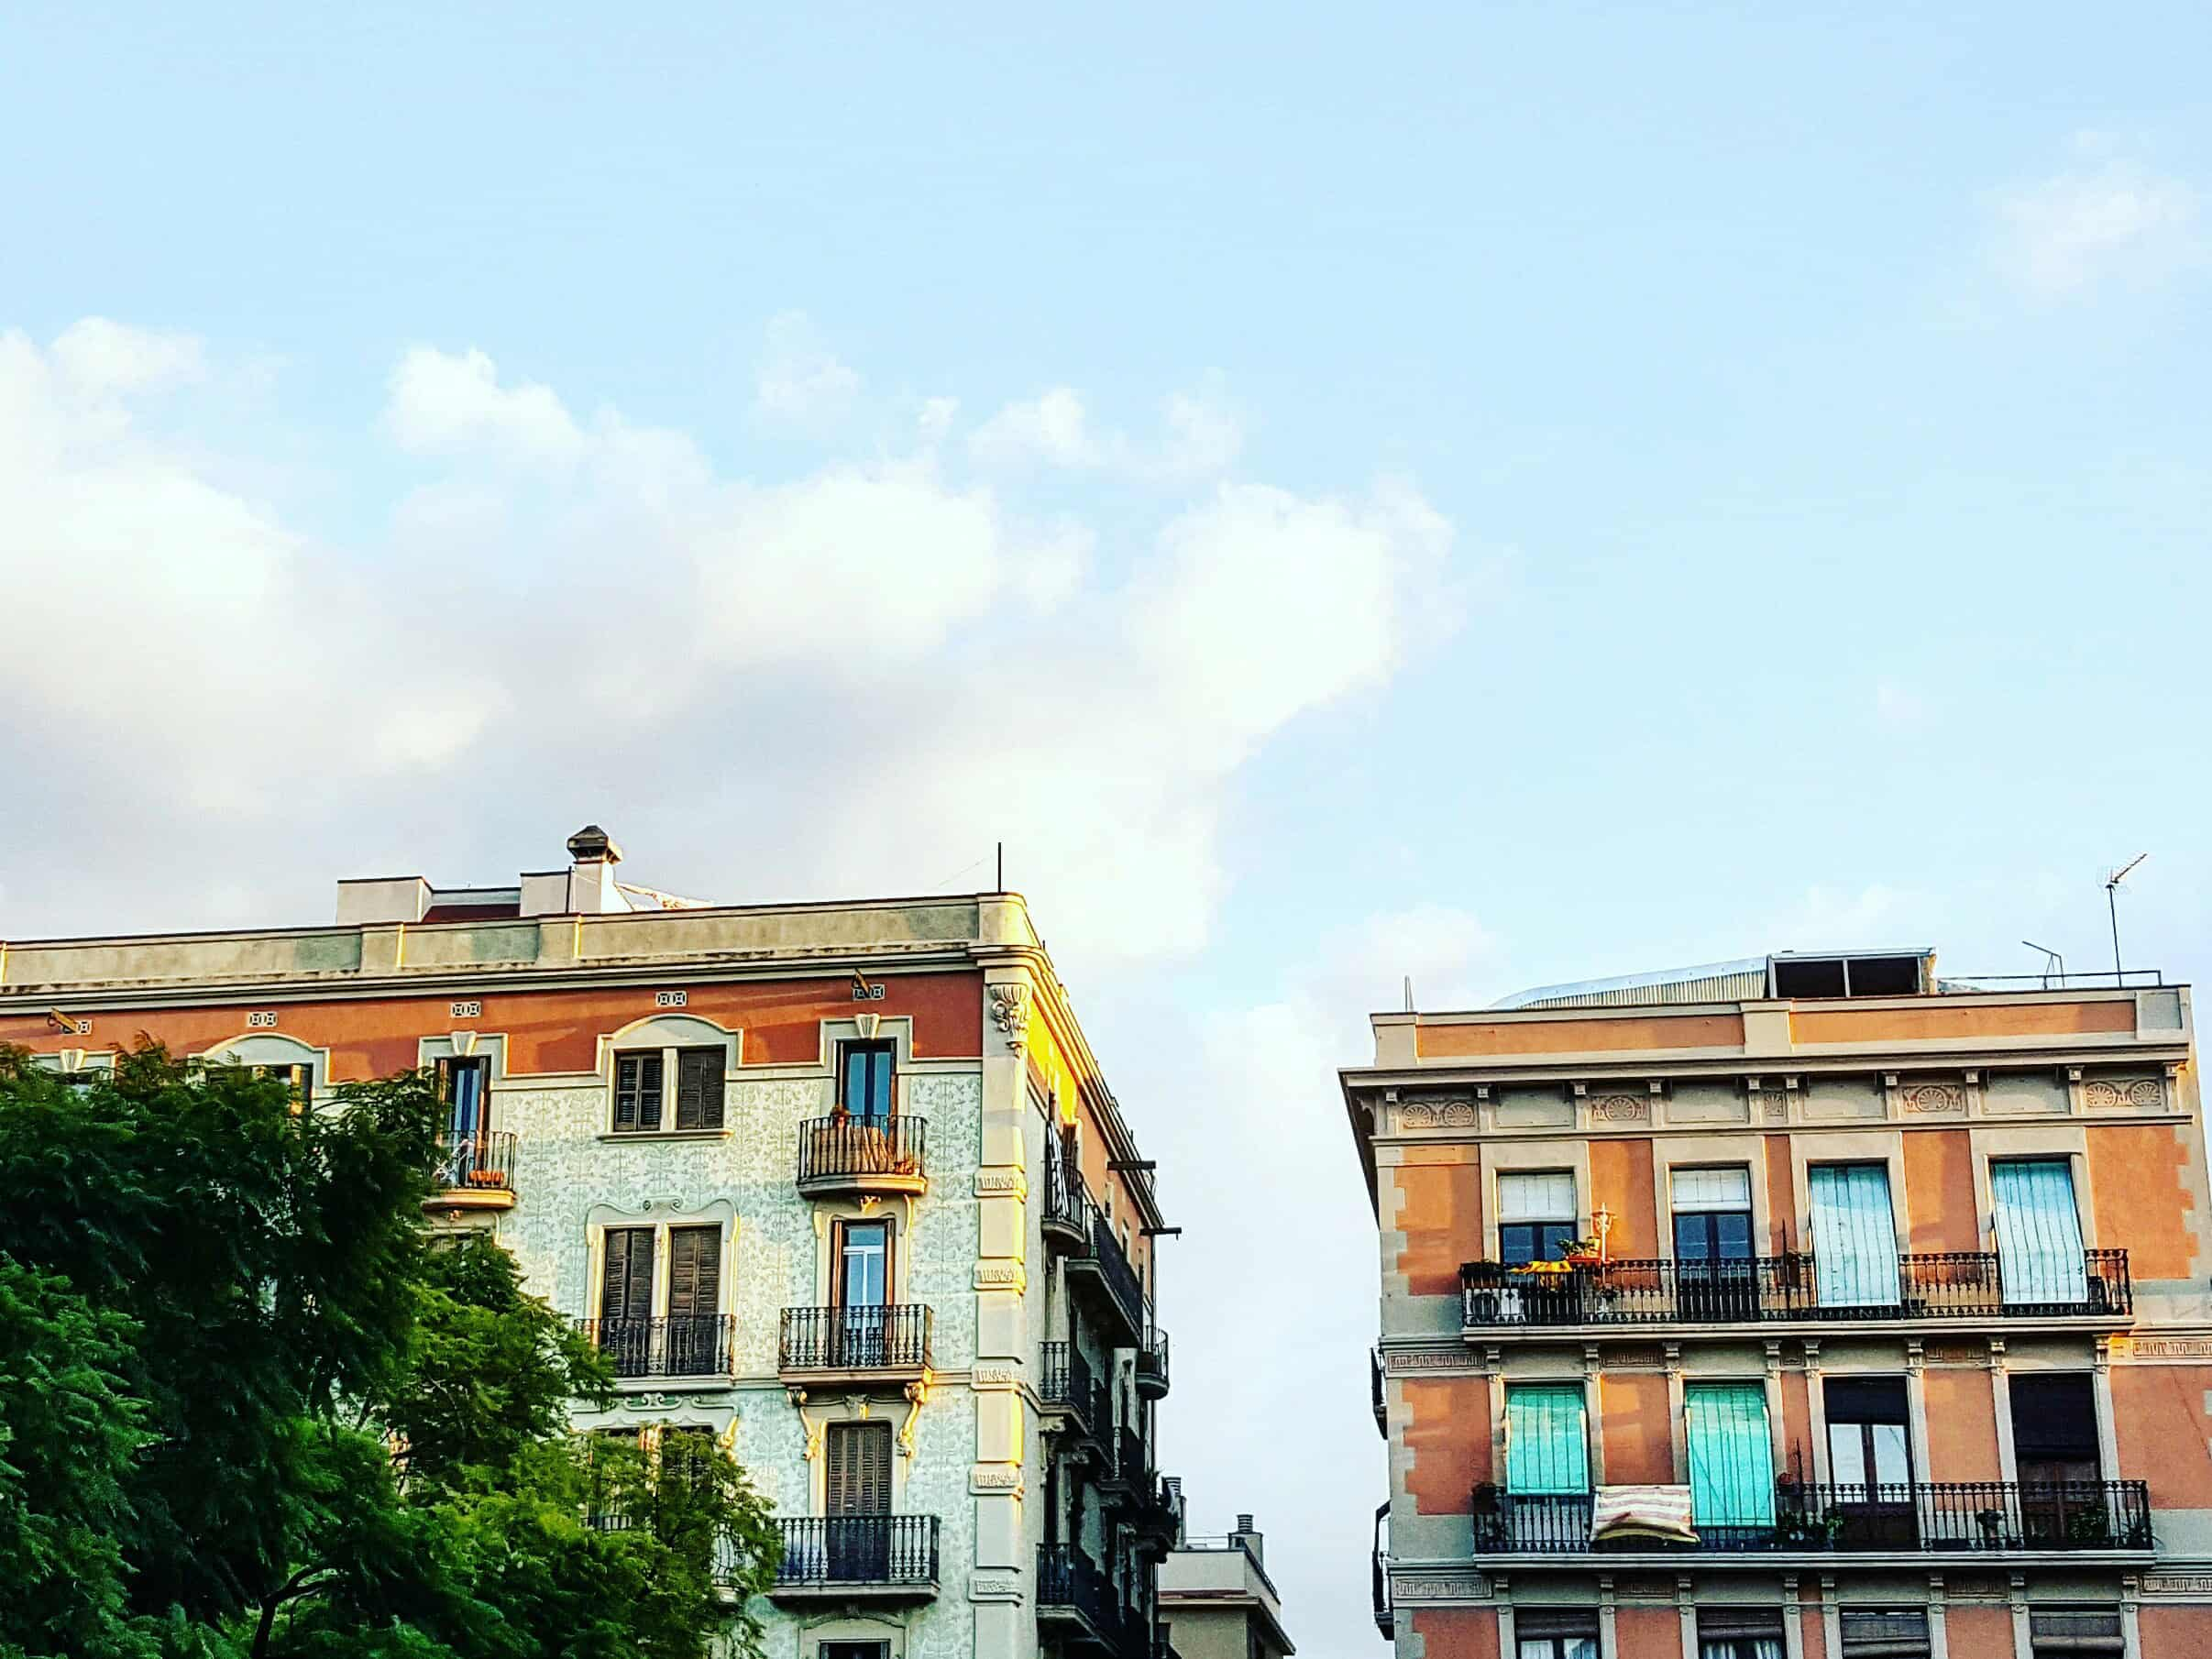 Barcelona barrios - buildings in a square in Gràcia